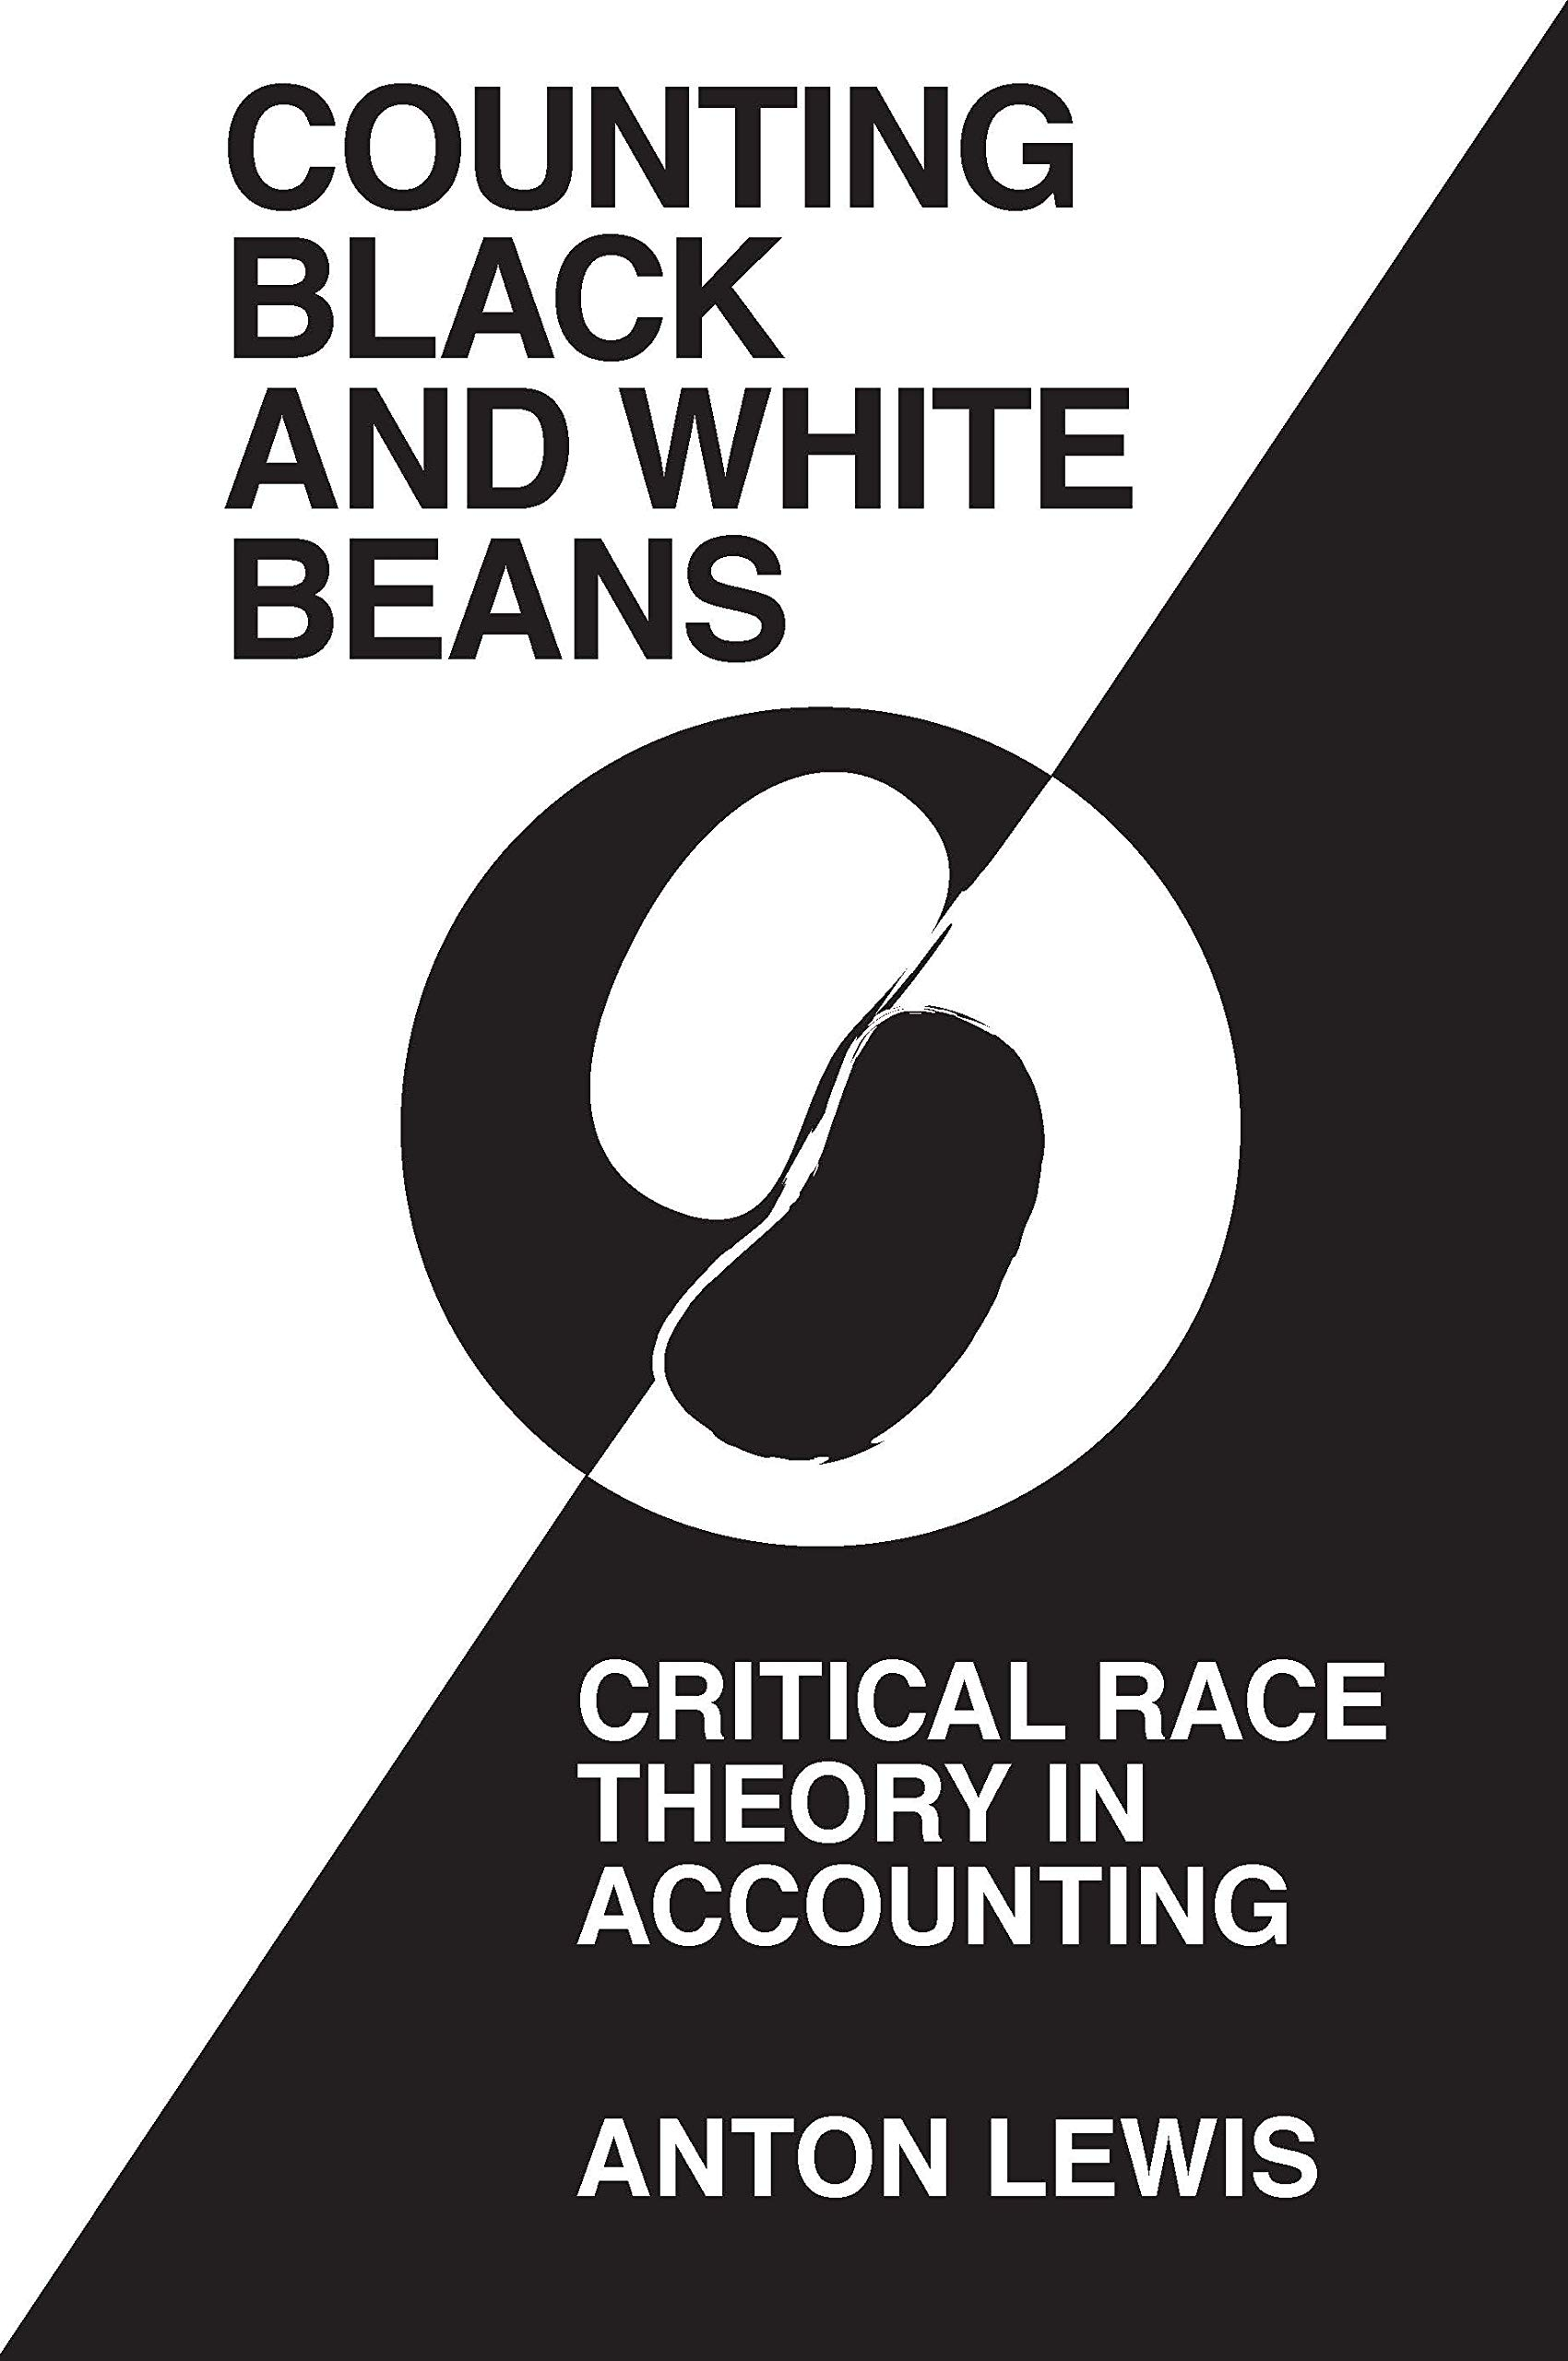 'Counting Black and White Beans': Critical Race Theory in Accounting